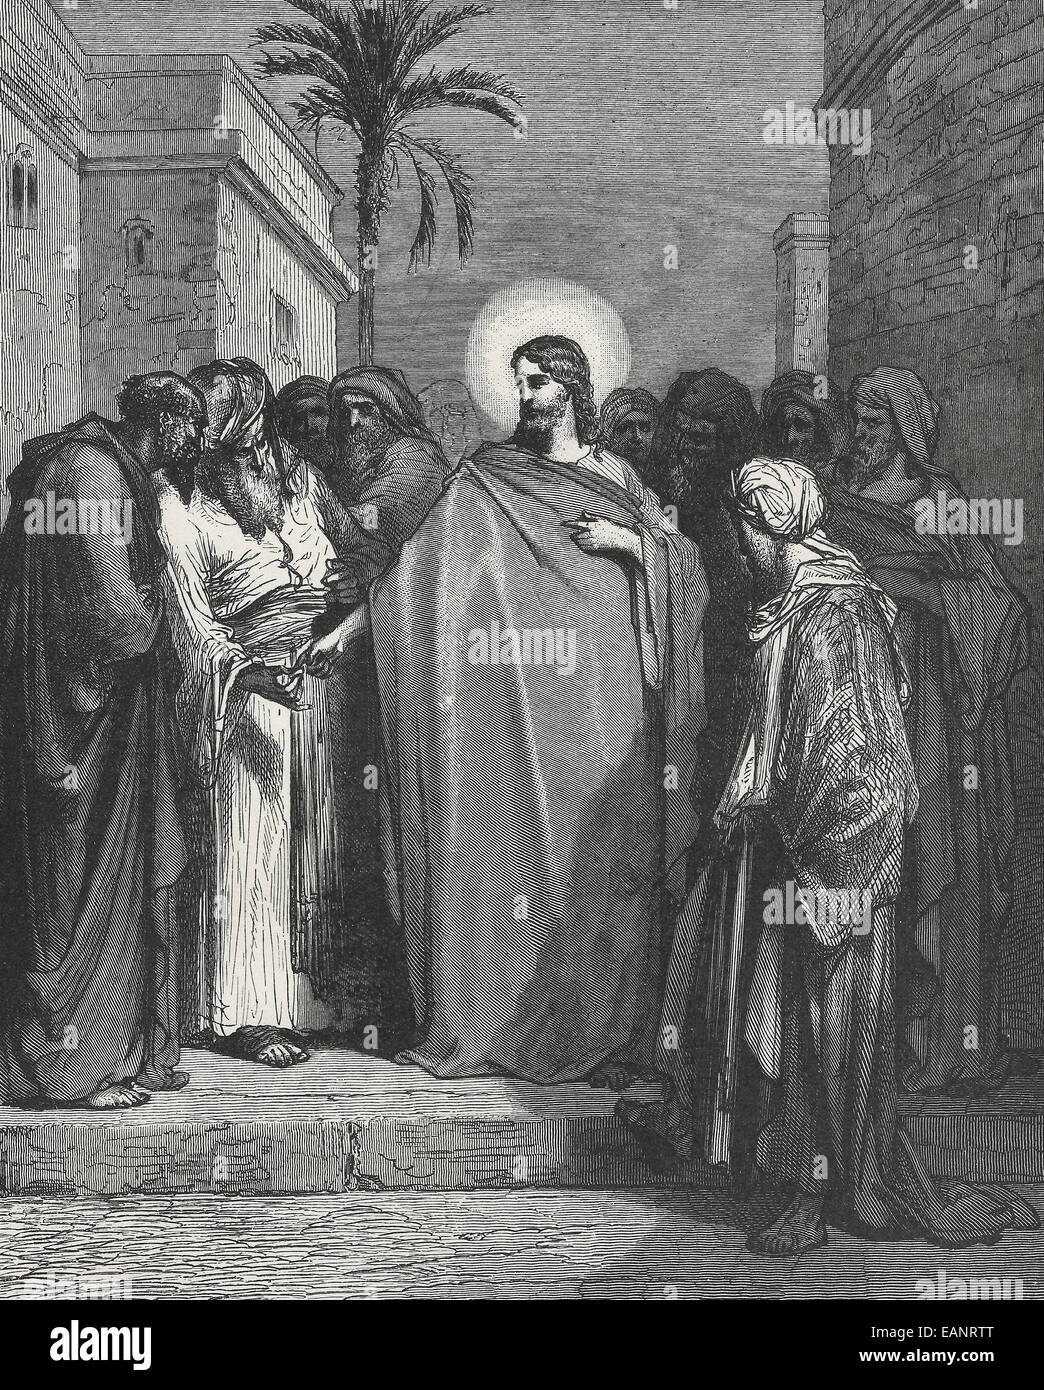 Render unto Caesar what is Caesar's and to God what is God's.  Jesus with the Pharisees - Stock Image